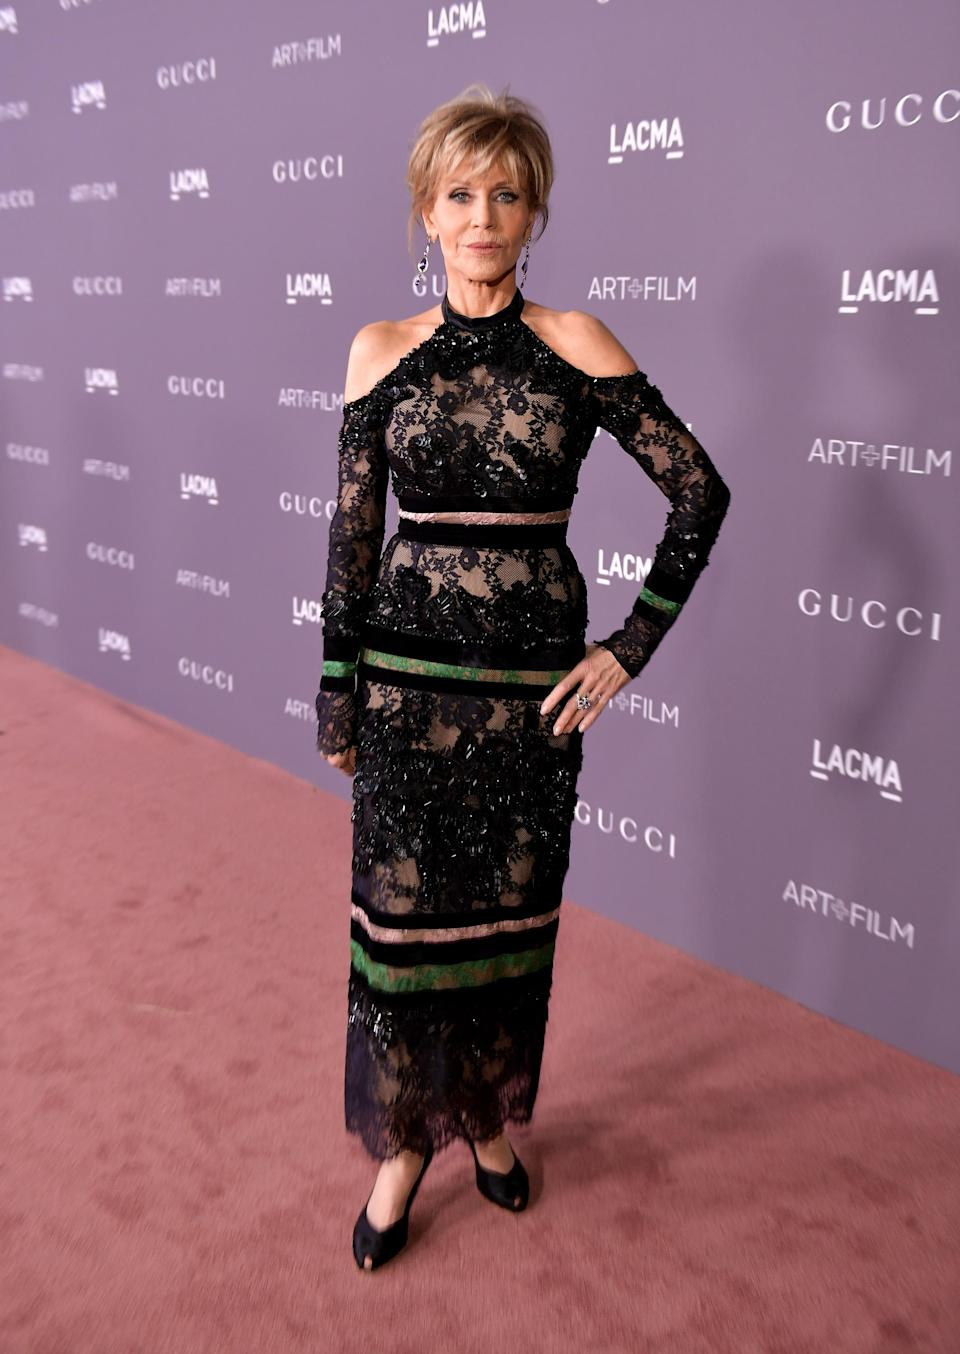 Jane Fonda attends the 2017 LACMA Art + Film gala honoring Mark Bradford and George Lucas on Nov. 4, in Los Angeles. (Photo: Getty Images)